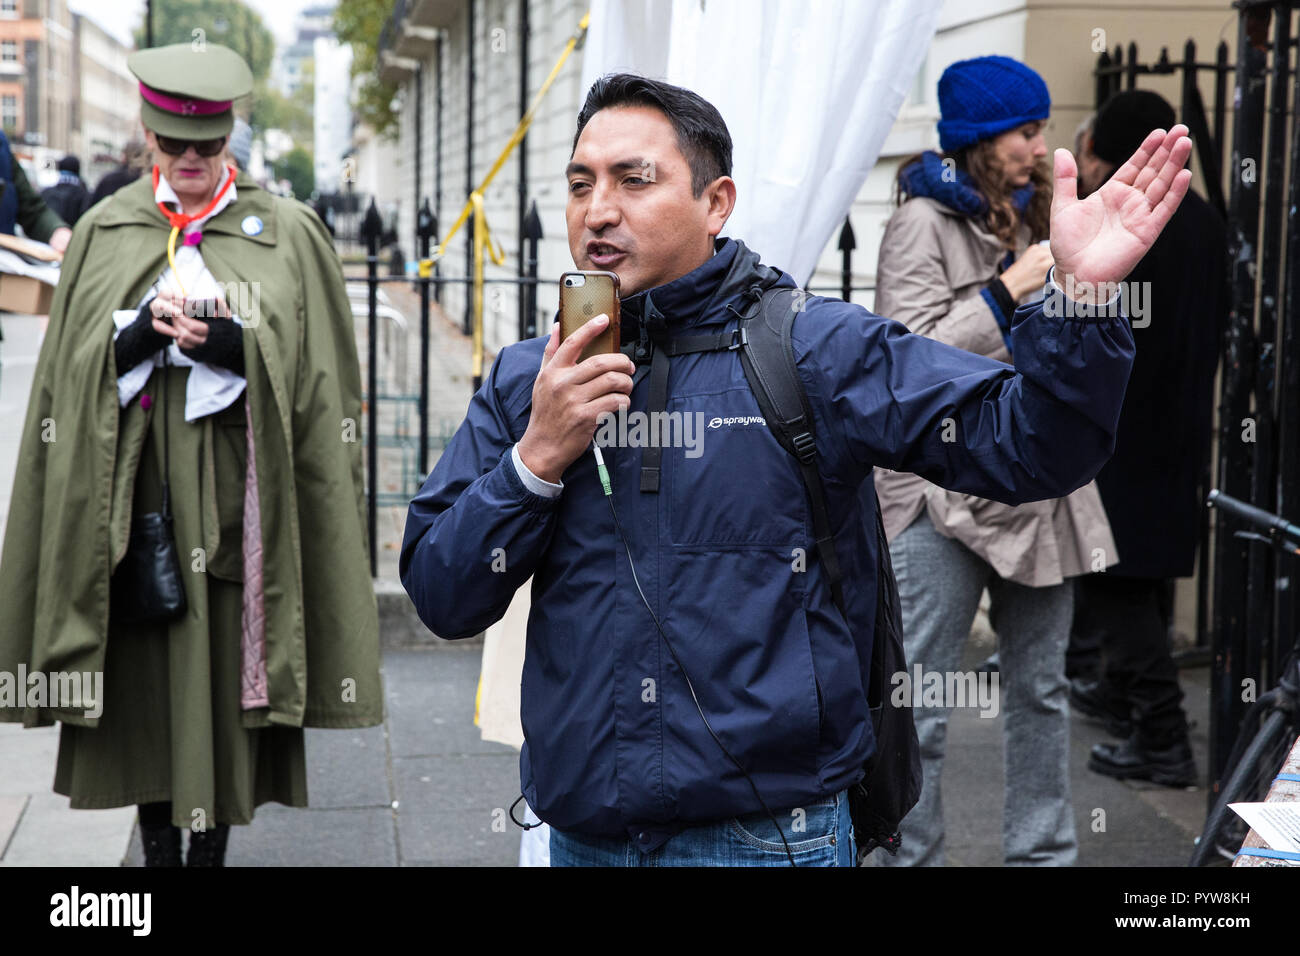 London, UK. 30th October, 2018. Henry Chango-Lopez, President of the Independent Workers of Great Britain (IWGB) trade union addresses members, supporters and precarious workers after a march from the offices of Transport for London to the University of London via the Court of Appeal in support of Uber drivers who are seeking employment rights. The Court of Appeal will today hear an appeal by Uber against a ruling that its drivers are employees rather than self-employed workers. Credit: Mark Kerrison/Alamy Live News - Stock Image